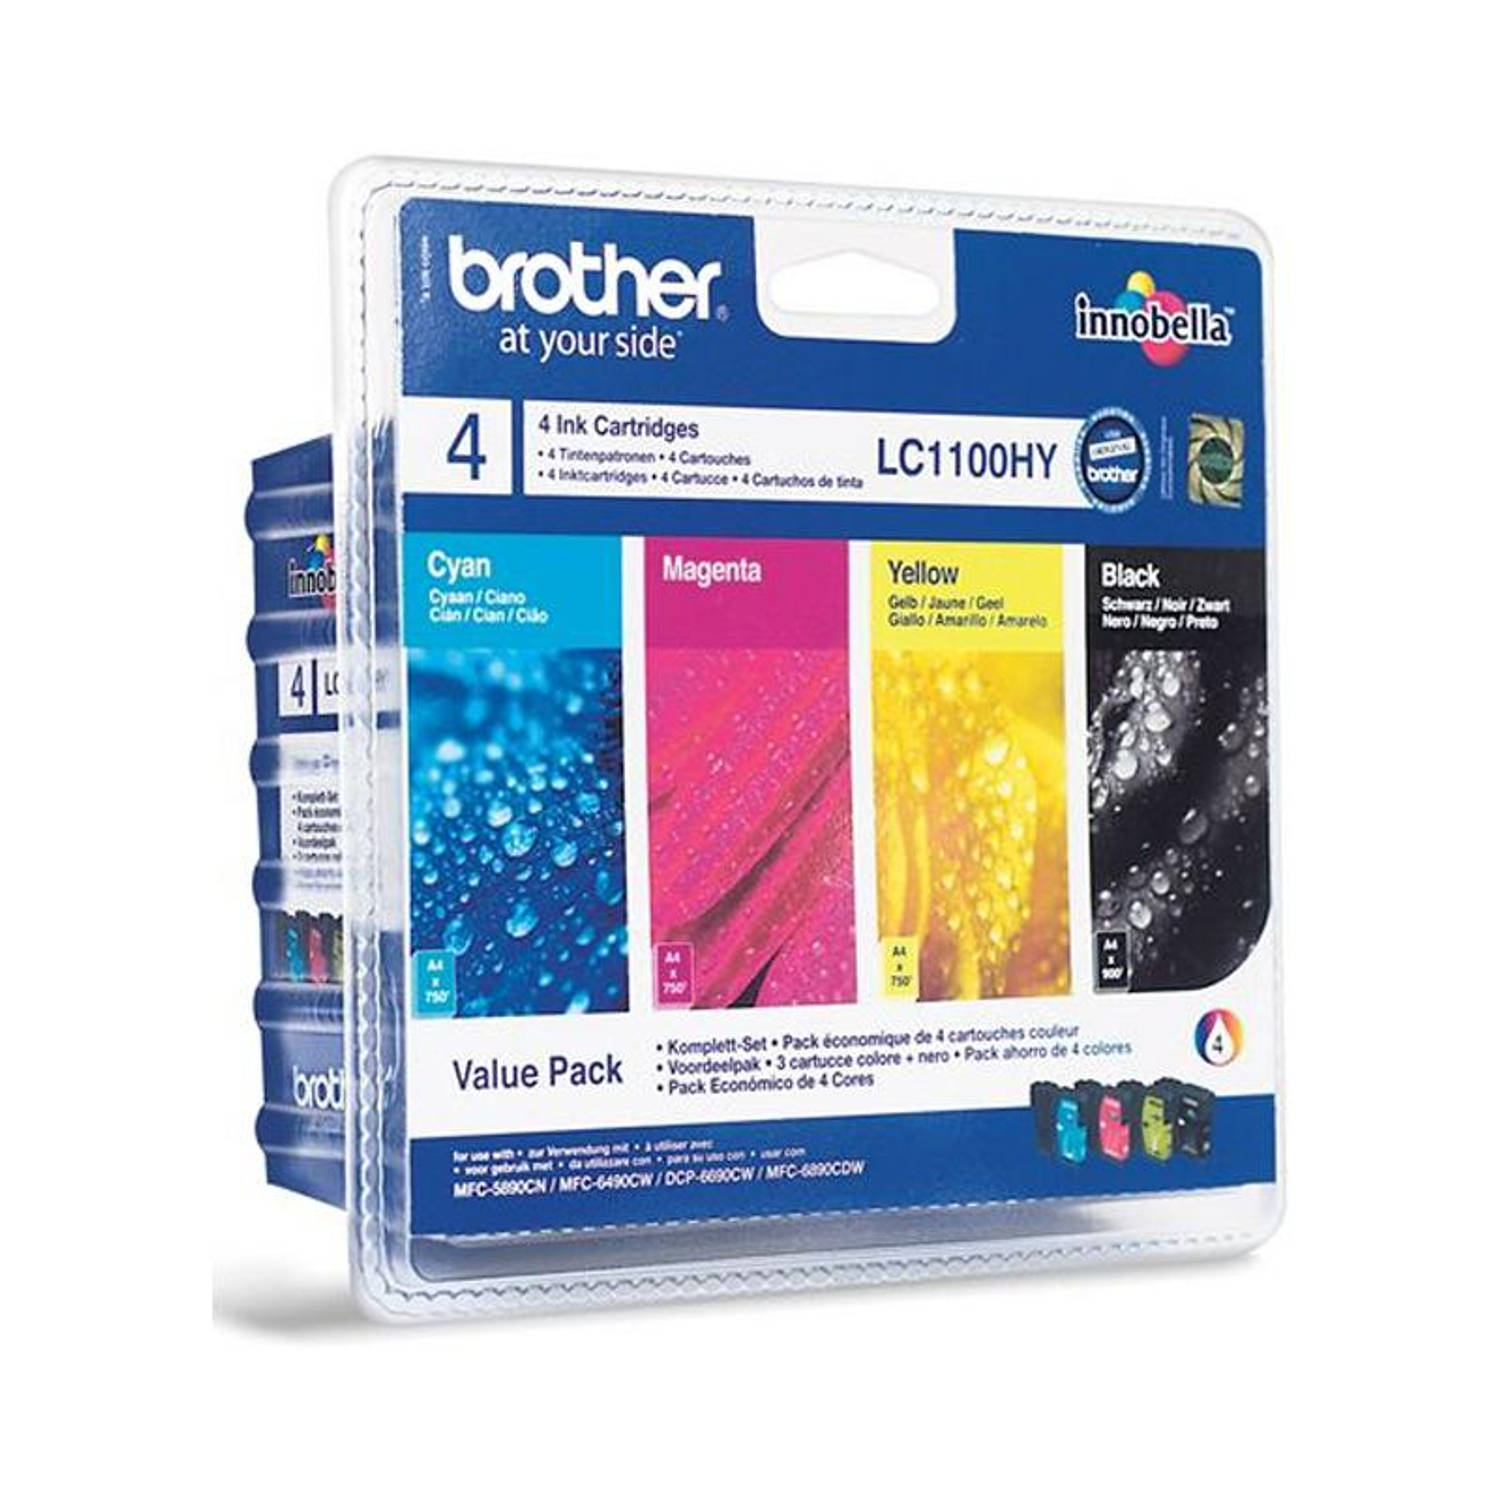 Brother LC-1100HY Multipack zwart en kleur Cartridge